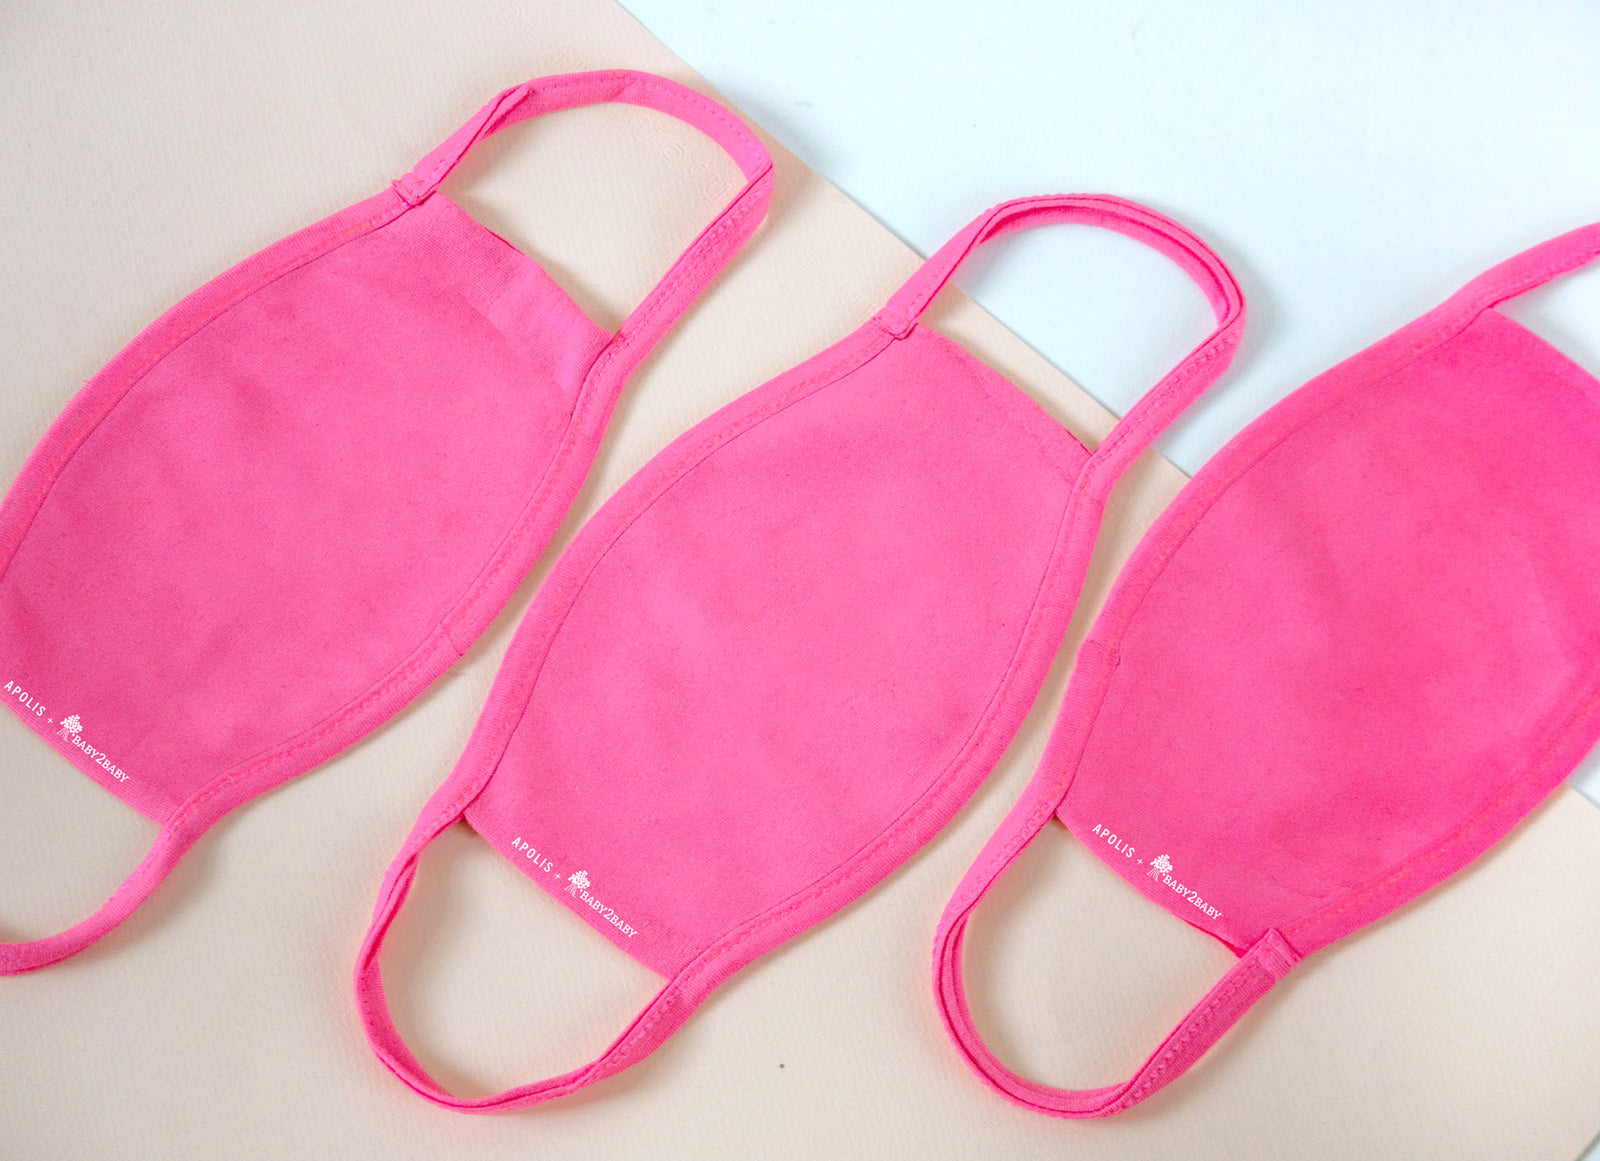 3-Pack Apolis Blank Non-Medical Face Mask for Baby2Baby® in Pink